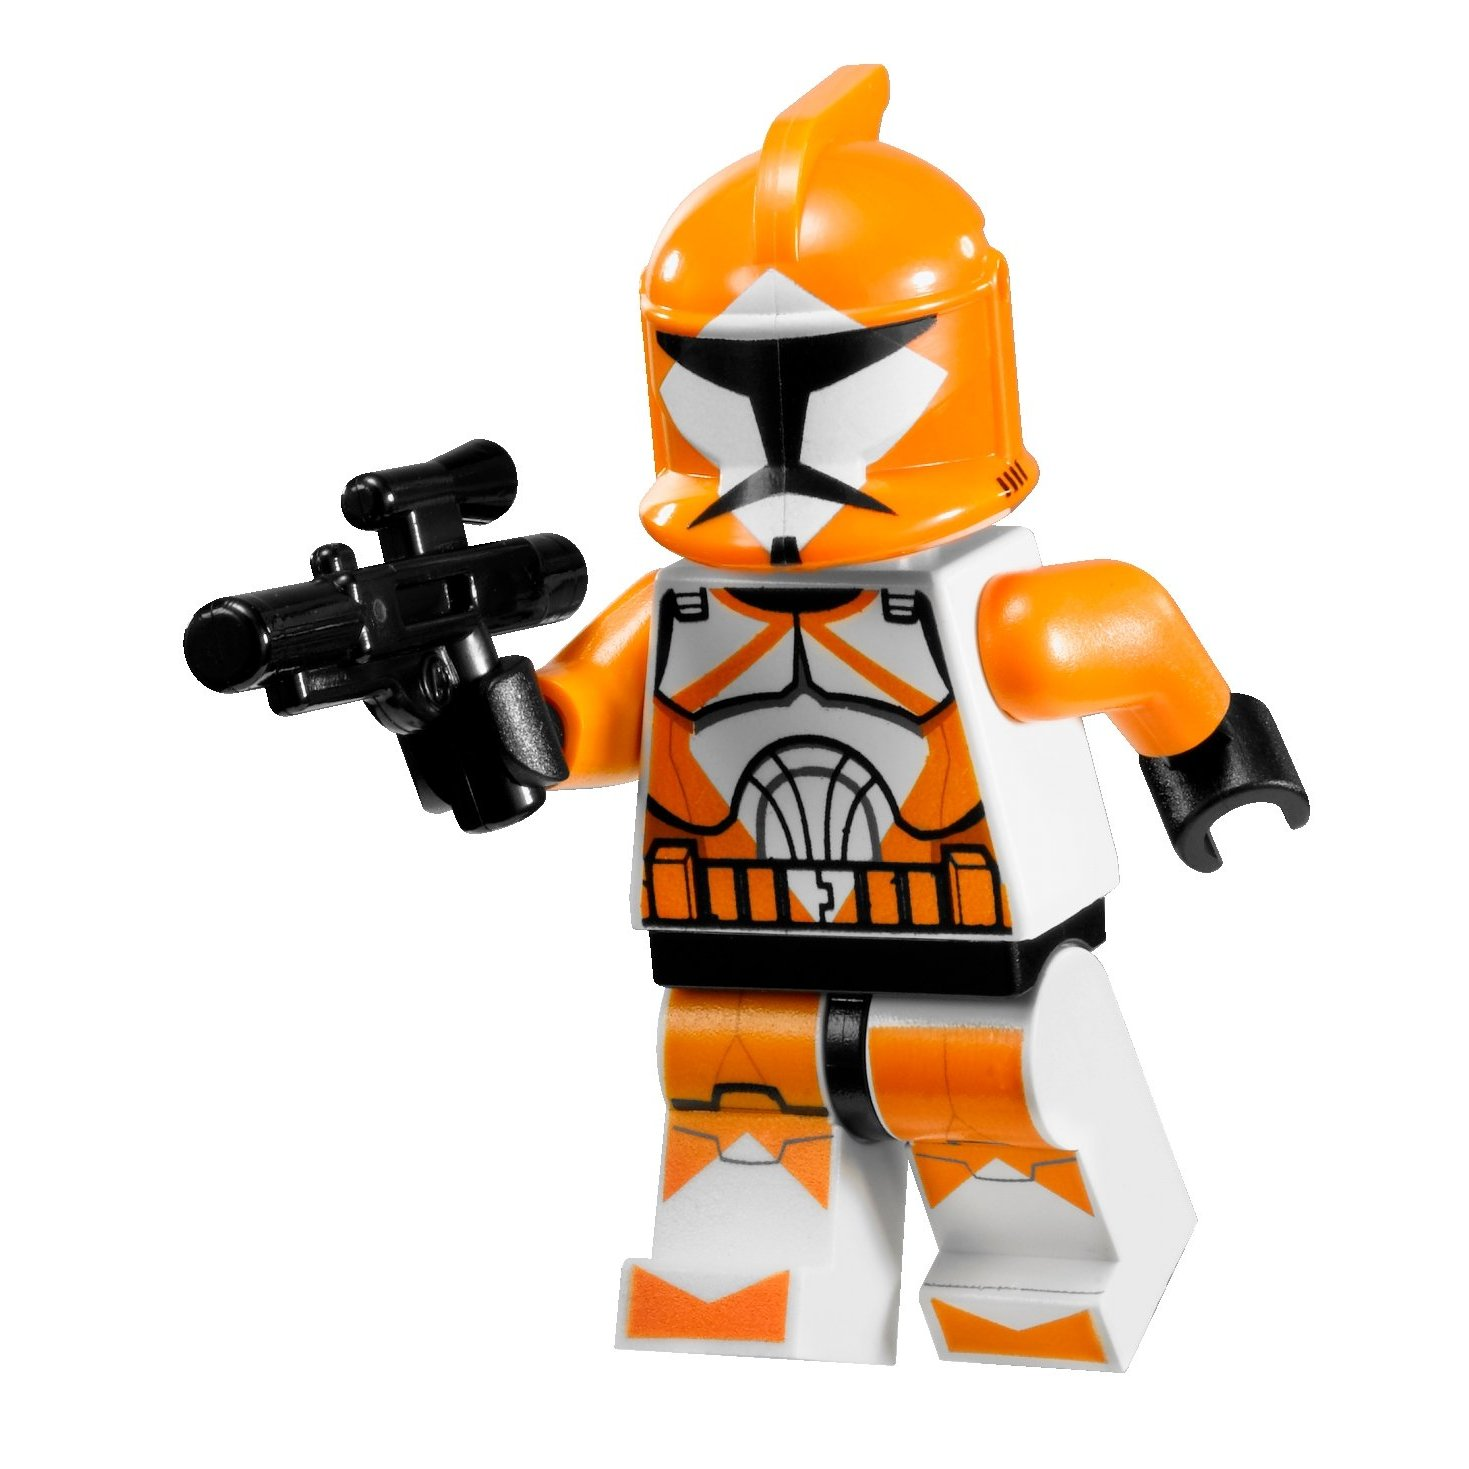 Star wars legos clipart 2 » Clipart Station.